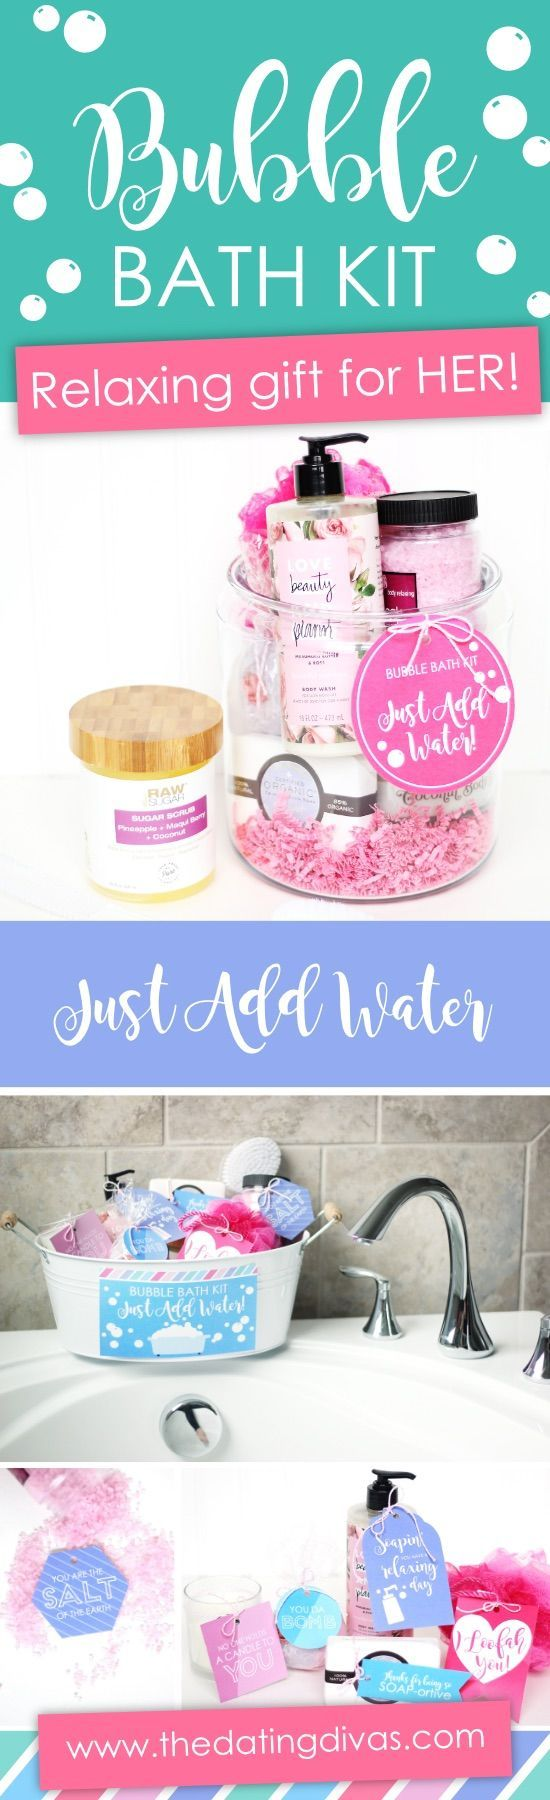 Diy Gifts Ideas Bubble Bath Relaxing Gift For Mom So Easy To Put